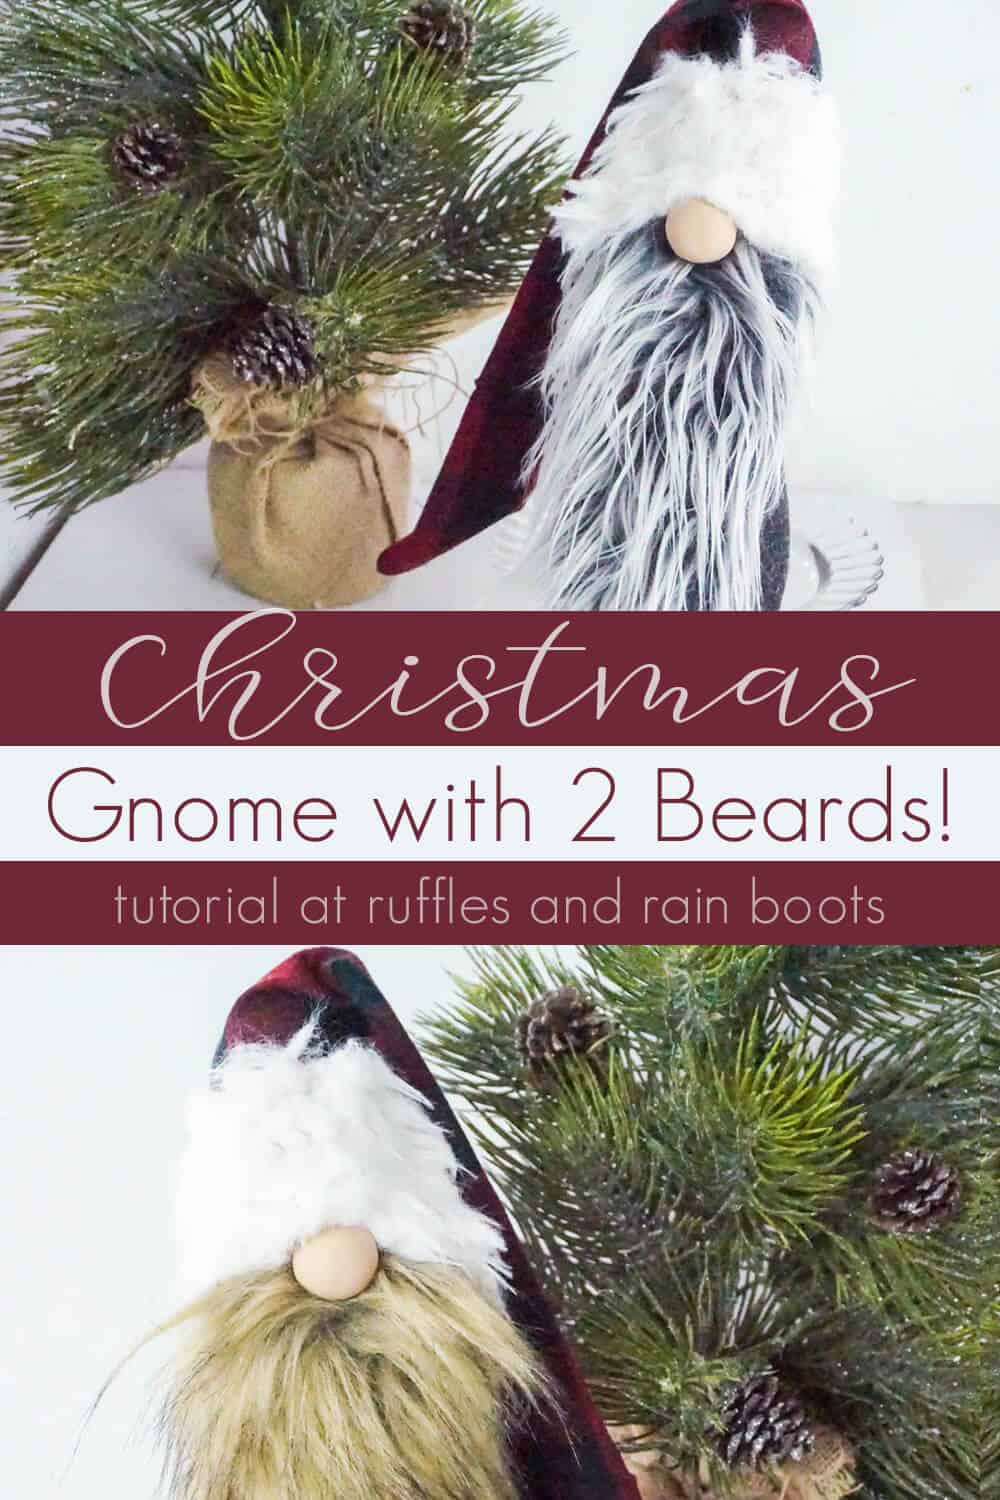 photo collage of how to make a Christmas gnome with 2 beards with text which reads christmas gnome with 2 beards!